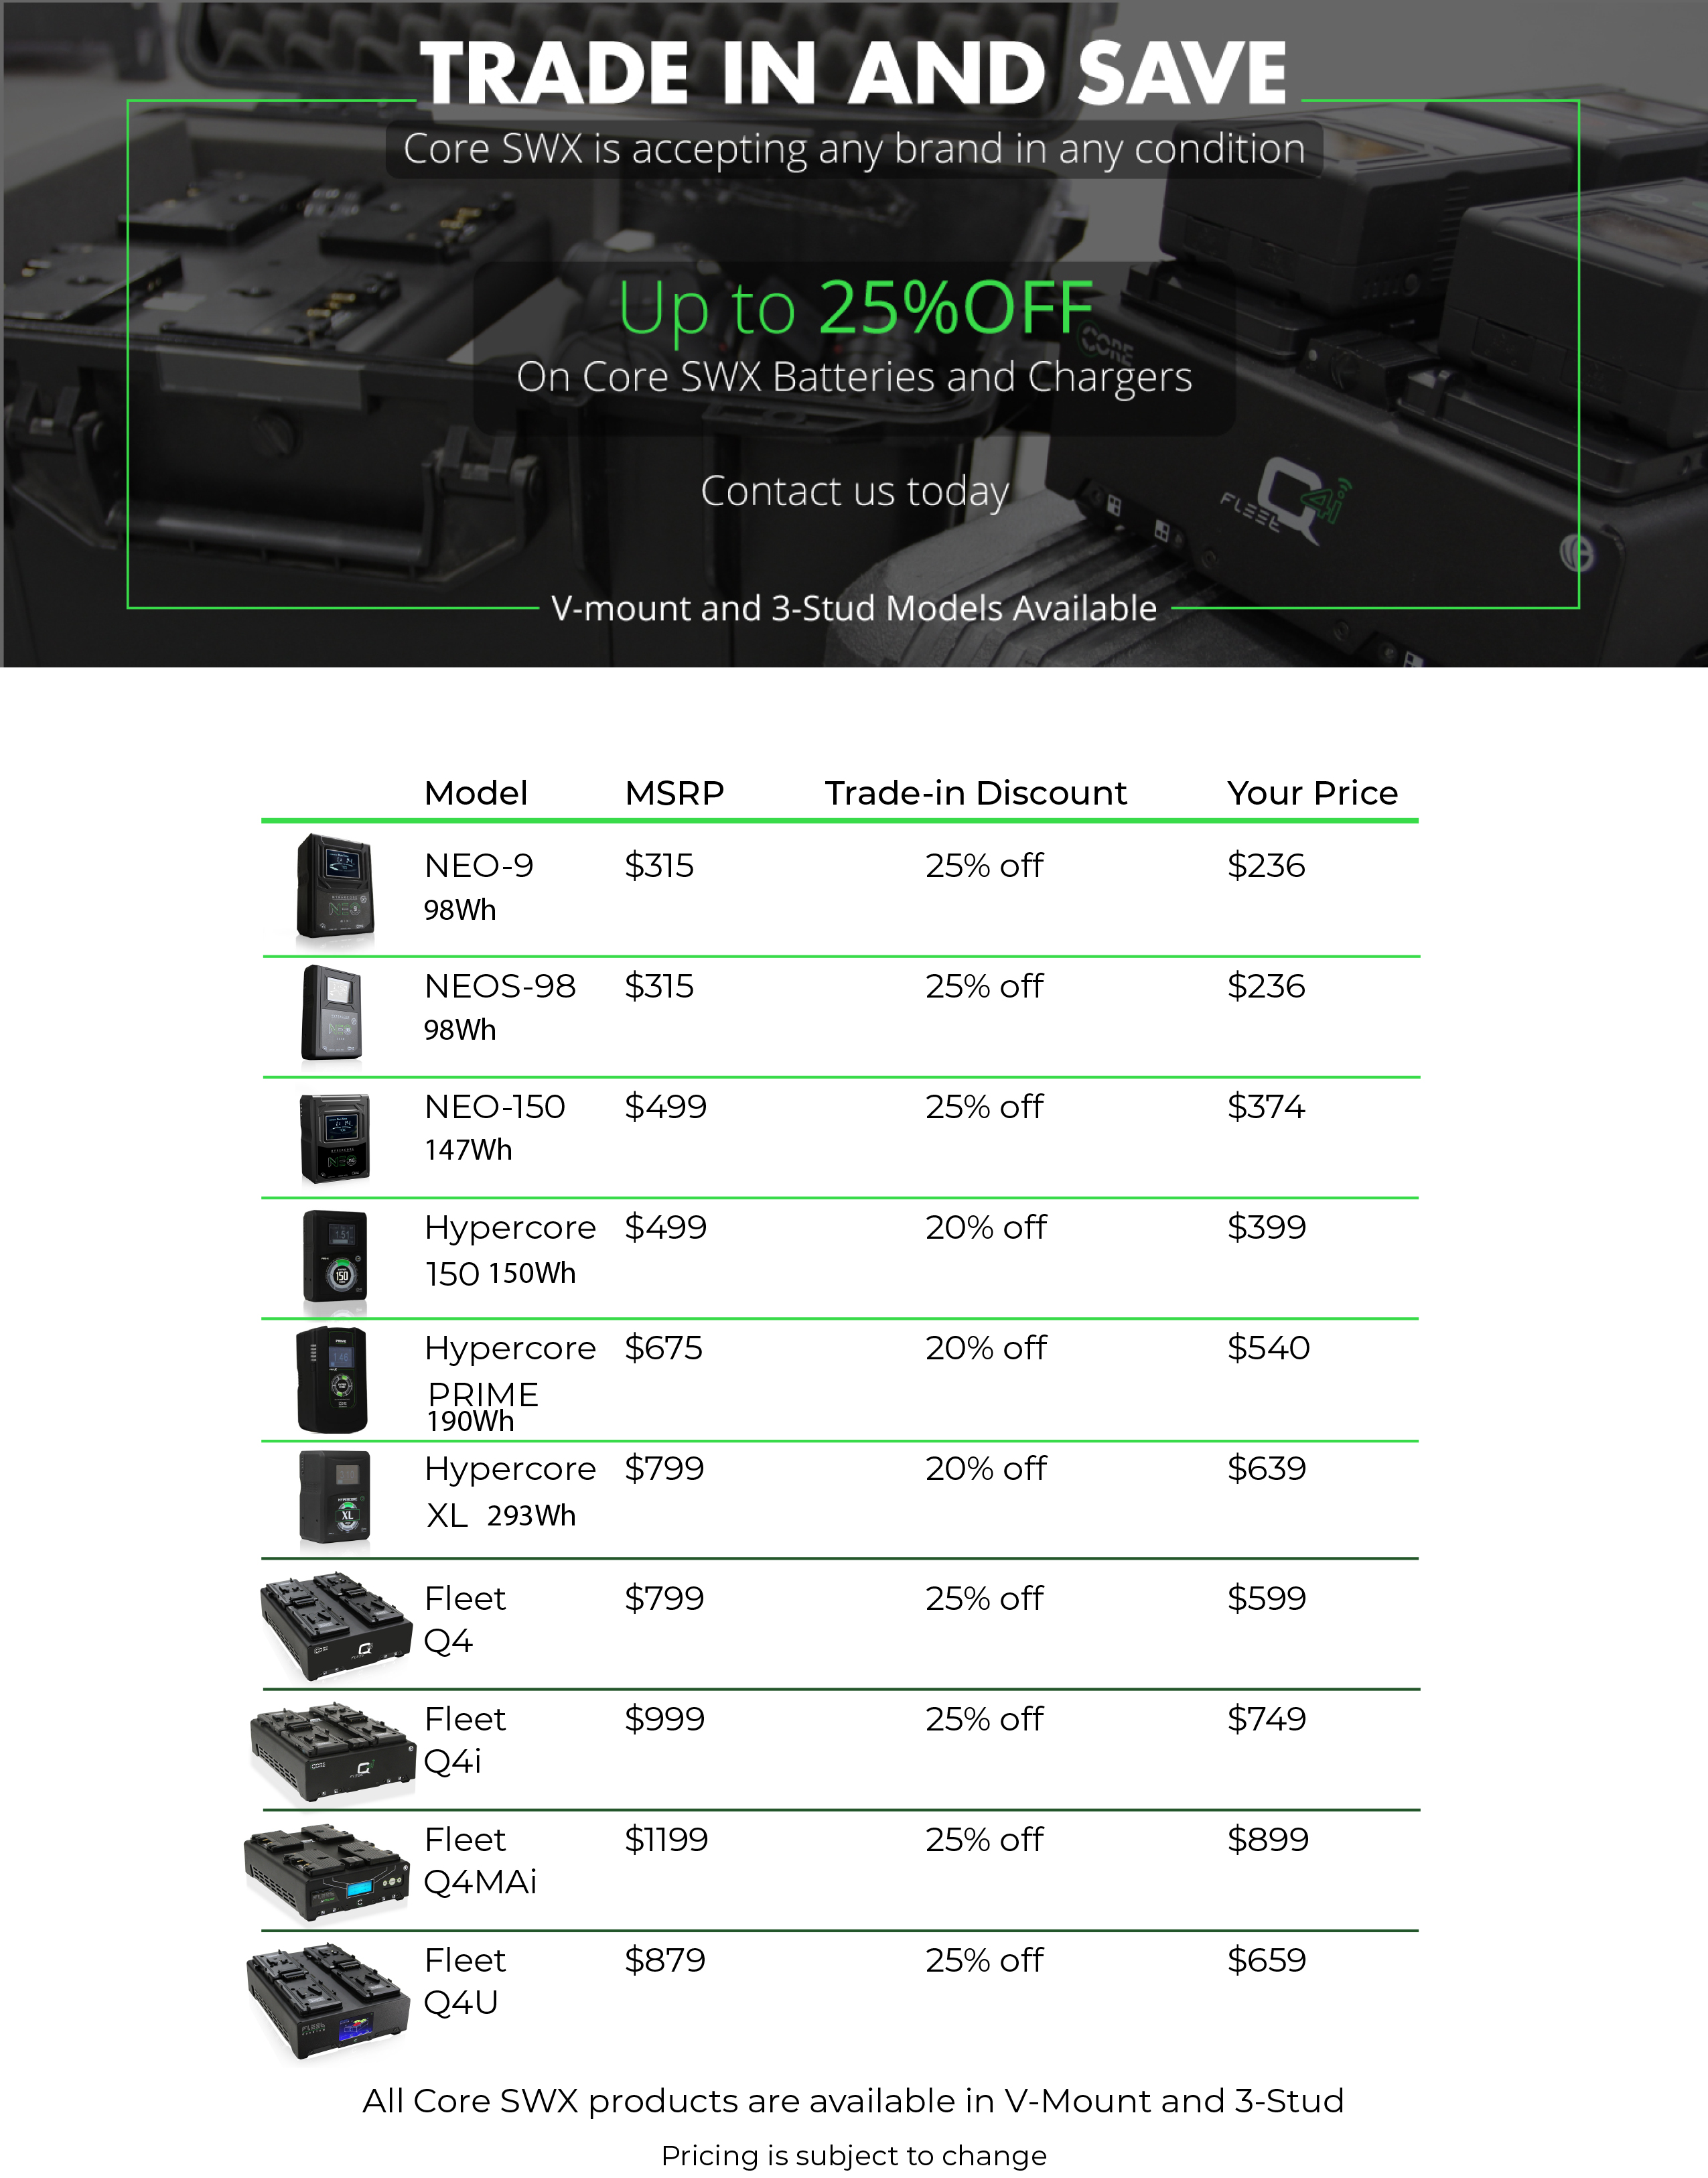 trade-in-and-save-pricing-r1.jpg